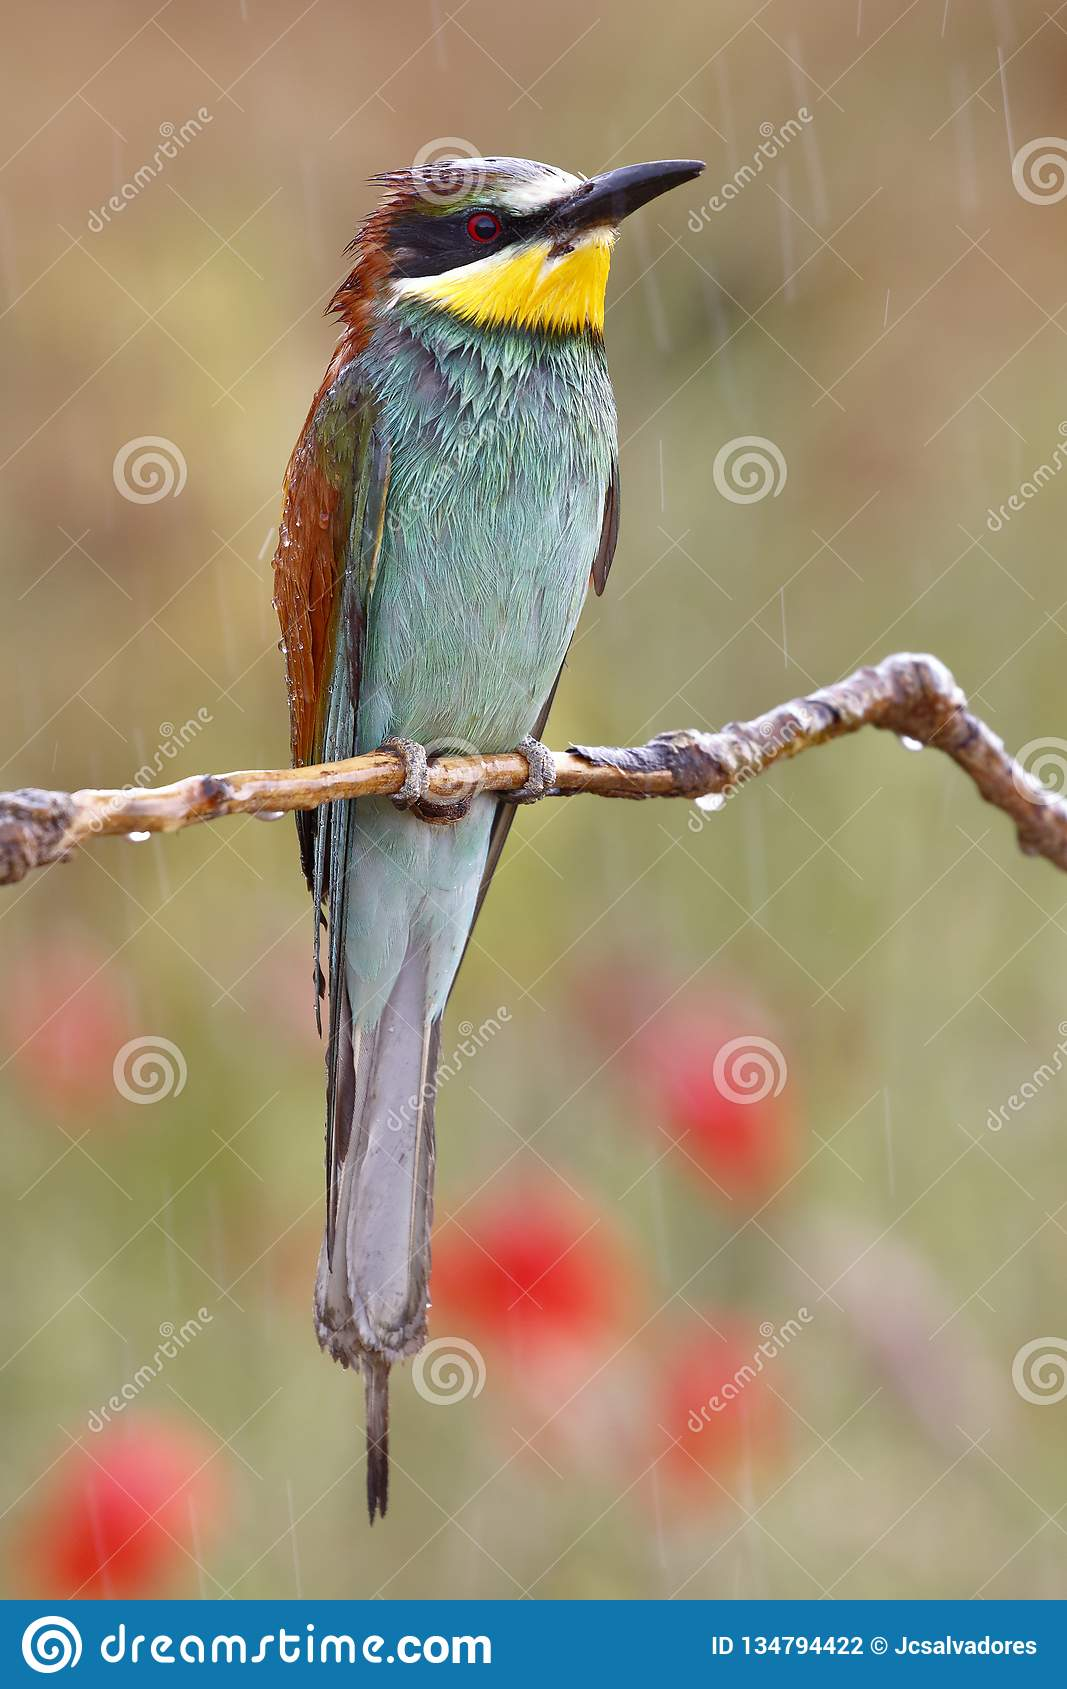 European bee-eater, Merops apiaster, beautiful colored bird